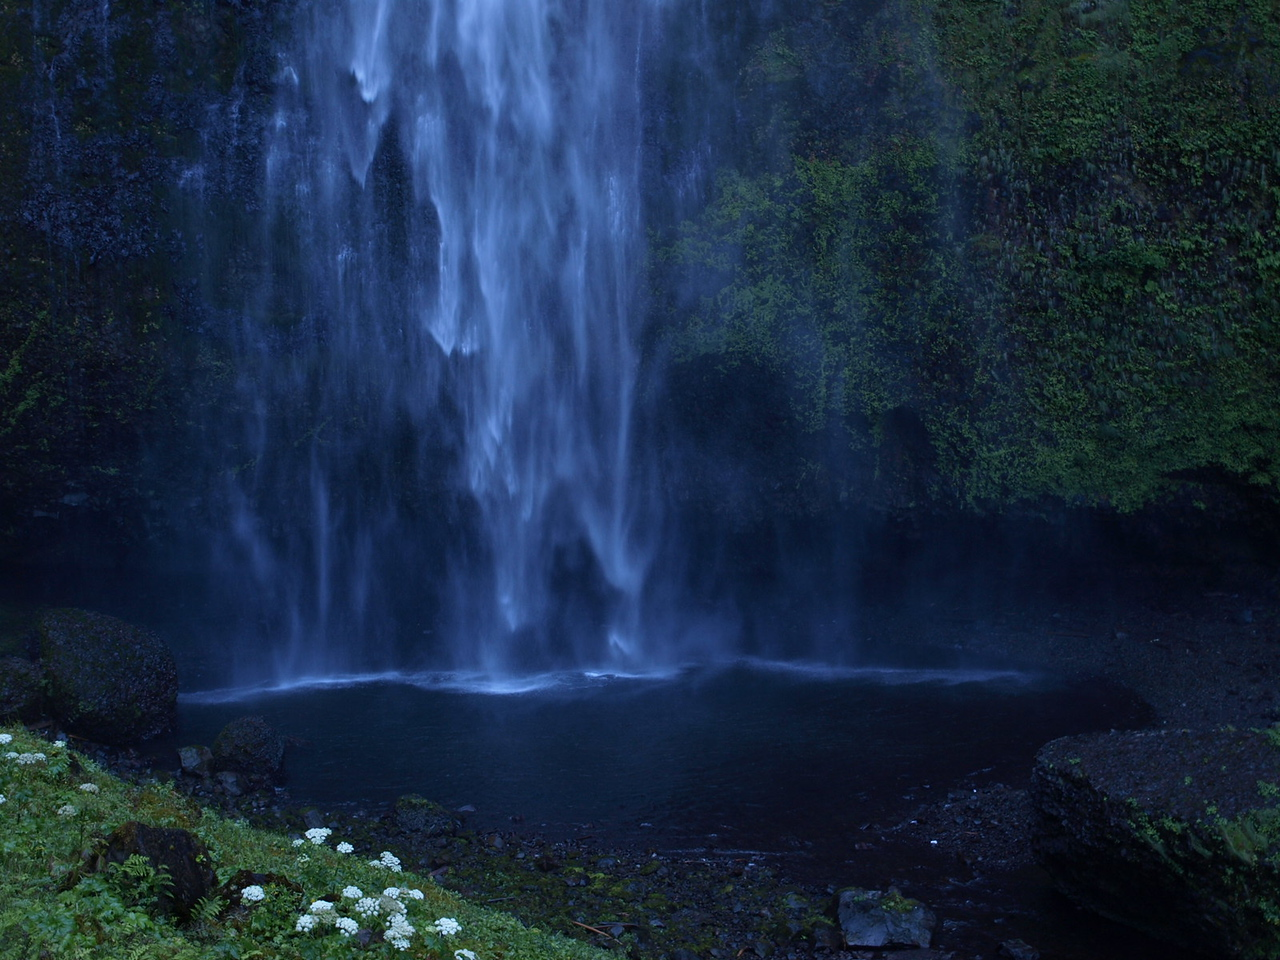 Multnomah Falls on the Oregon side of the Columbia River Gorge